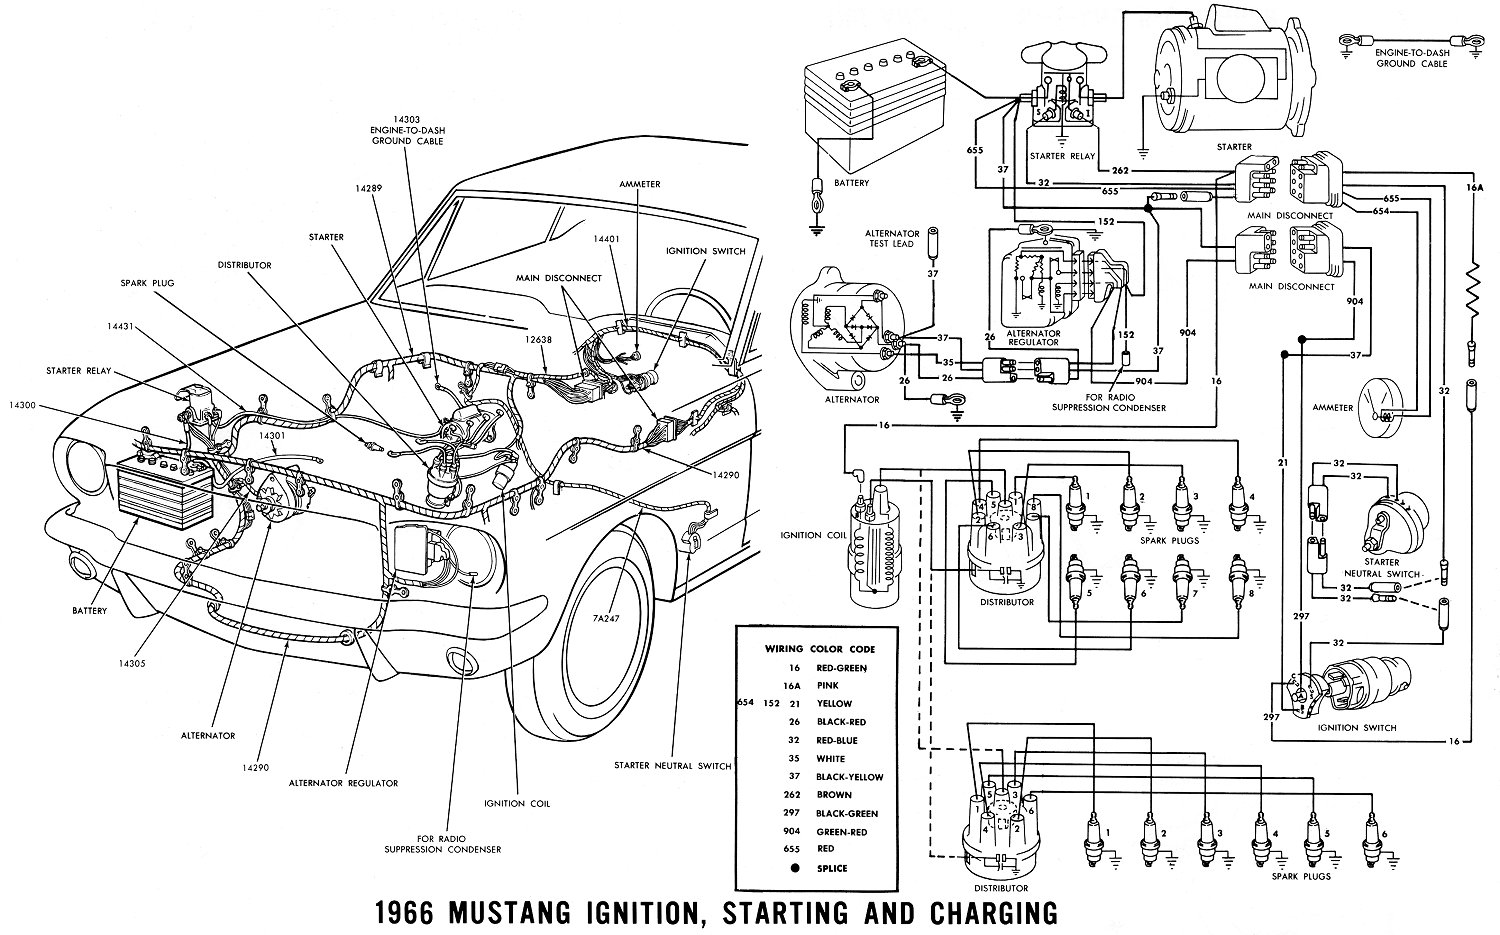 1966 Mustang Ignition Wiring Diagram on 1956 ford f100 body parts